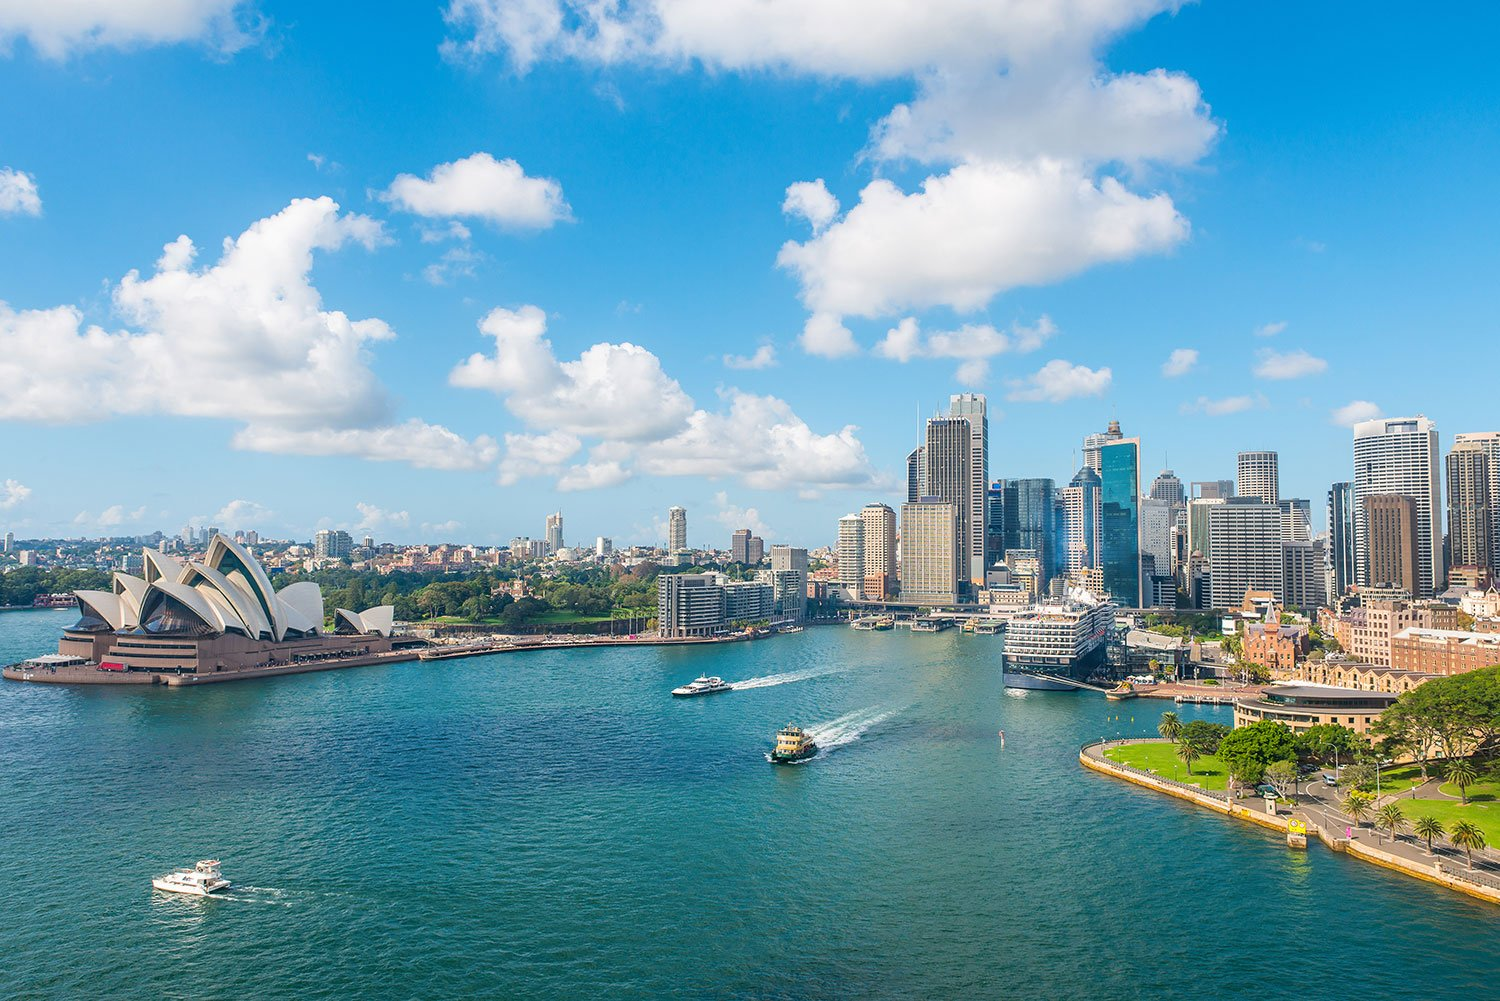 View of the Sydney Opera House, skyline and coast in Australia